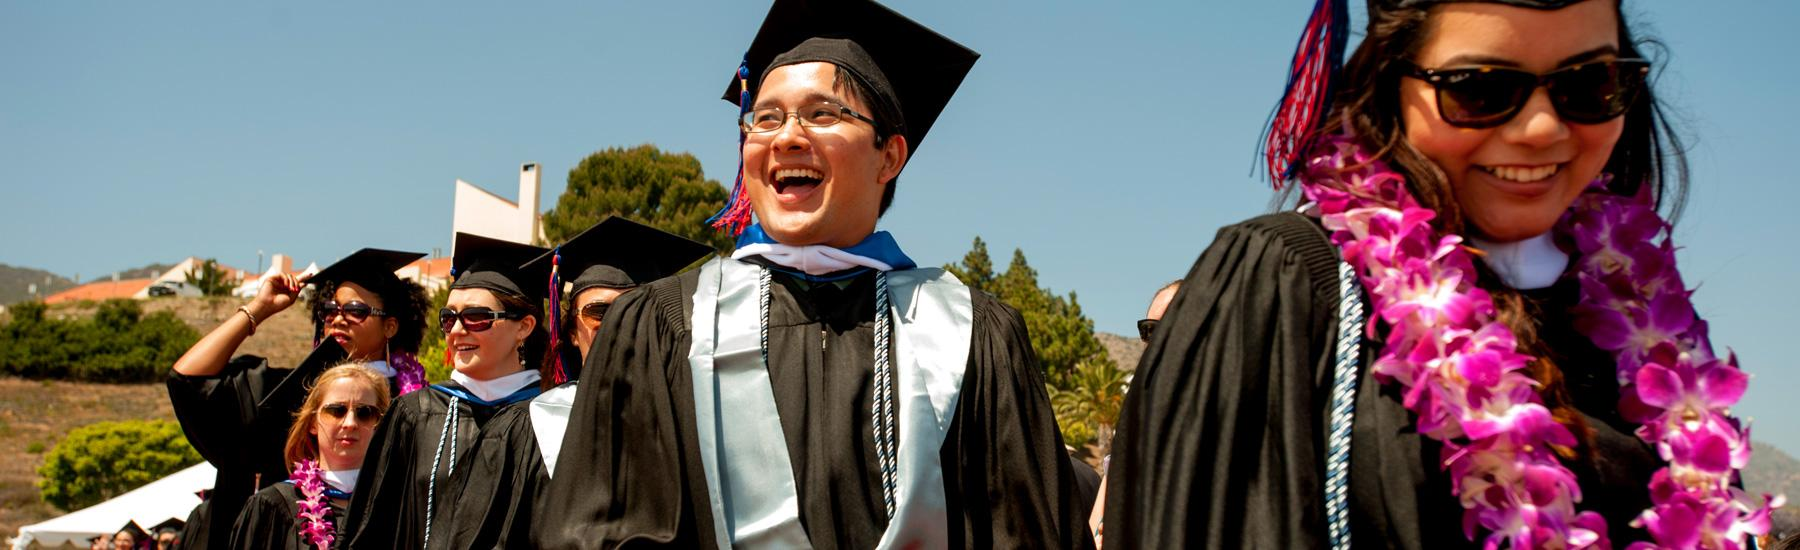 GSEP students line up at graduation ceremony - Pepperdine GSEP